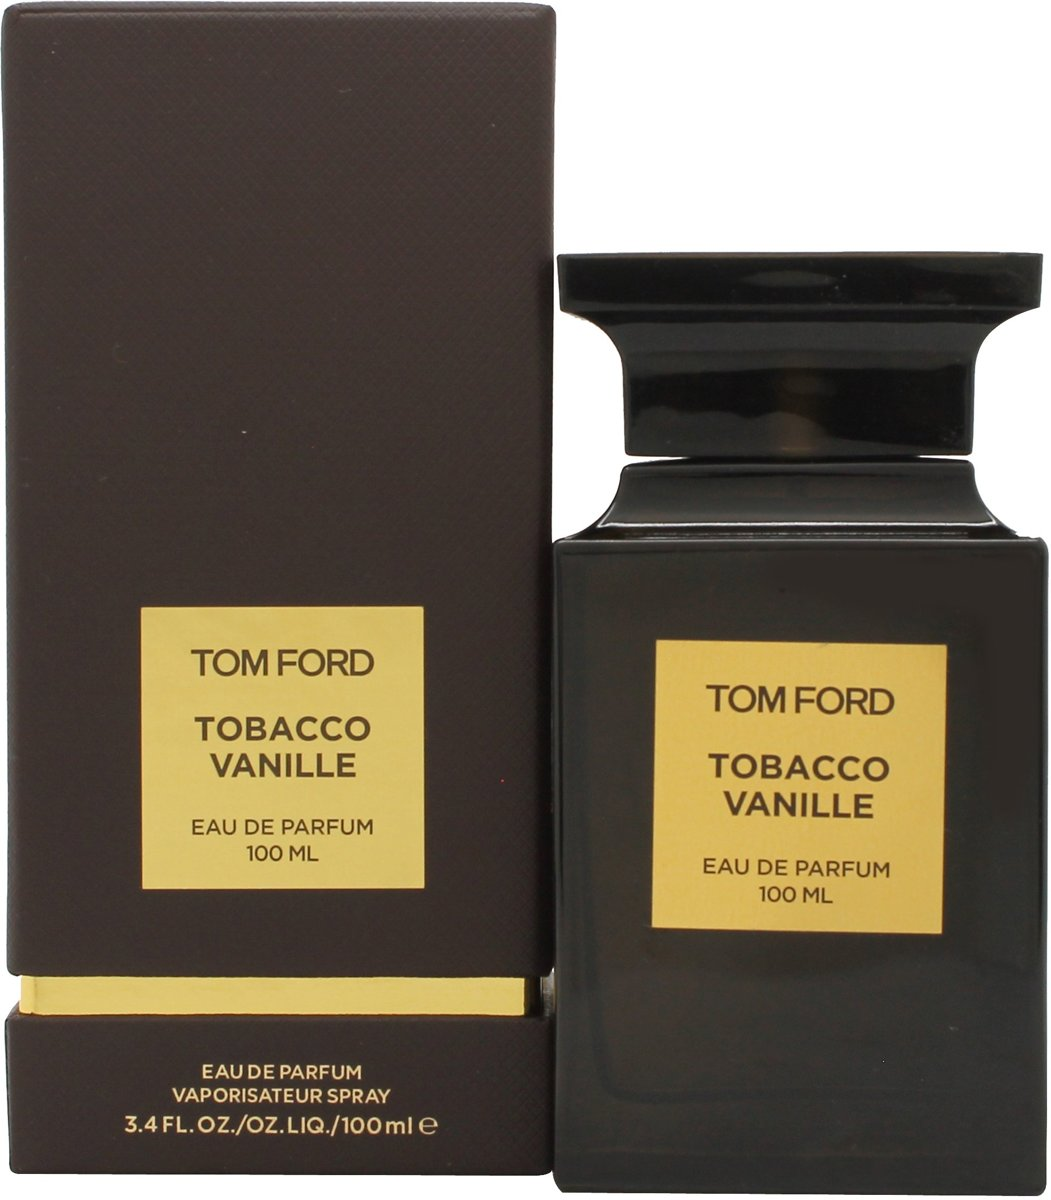 Tom Ford Tobacco Vanille By Tom Ford Eau De Parfum Spray 100 ml - Fragrances For Men